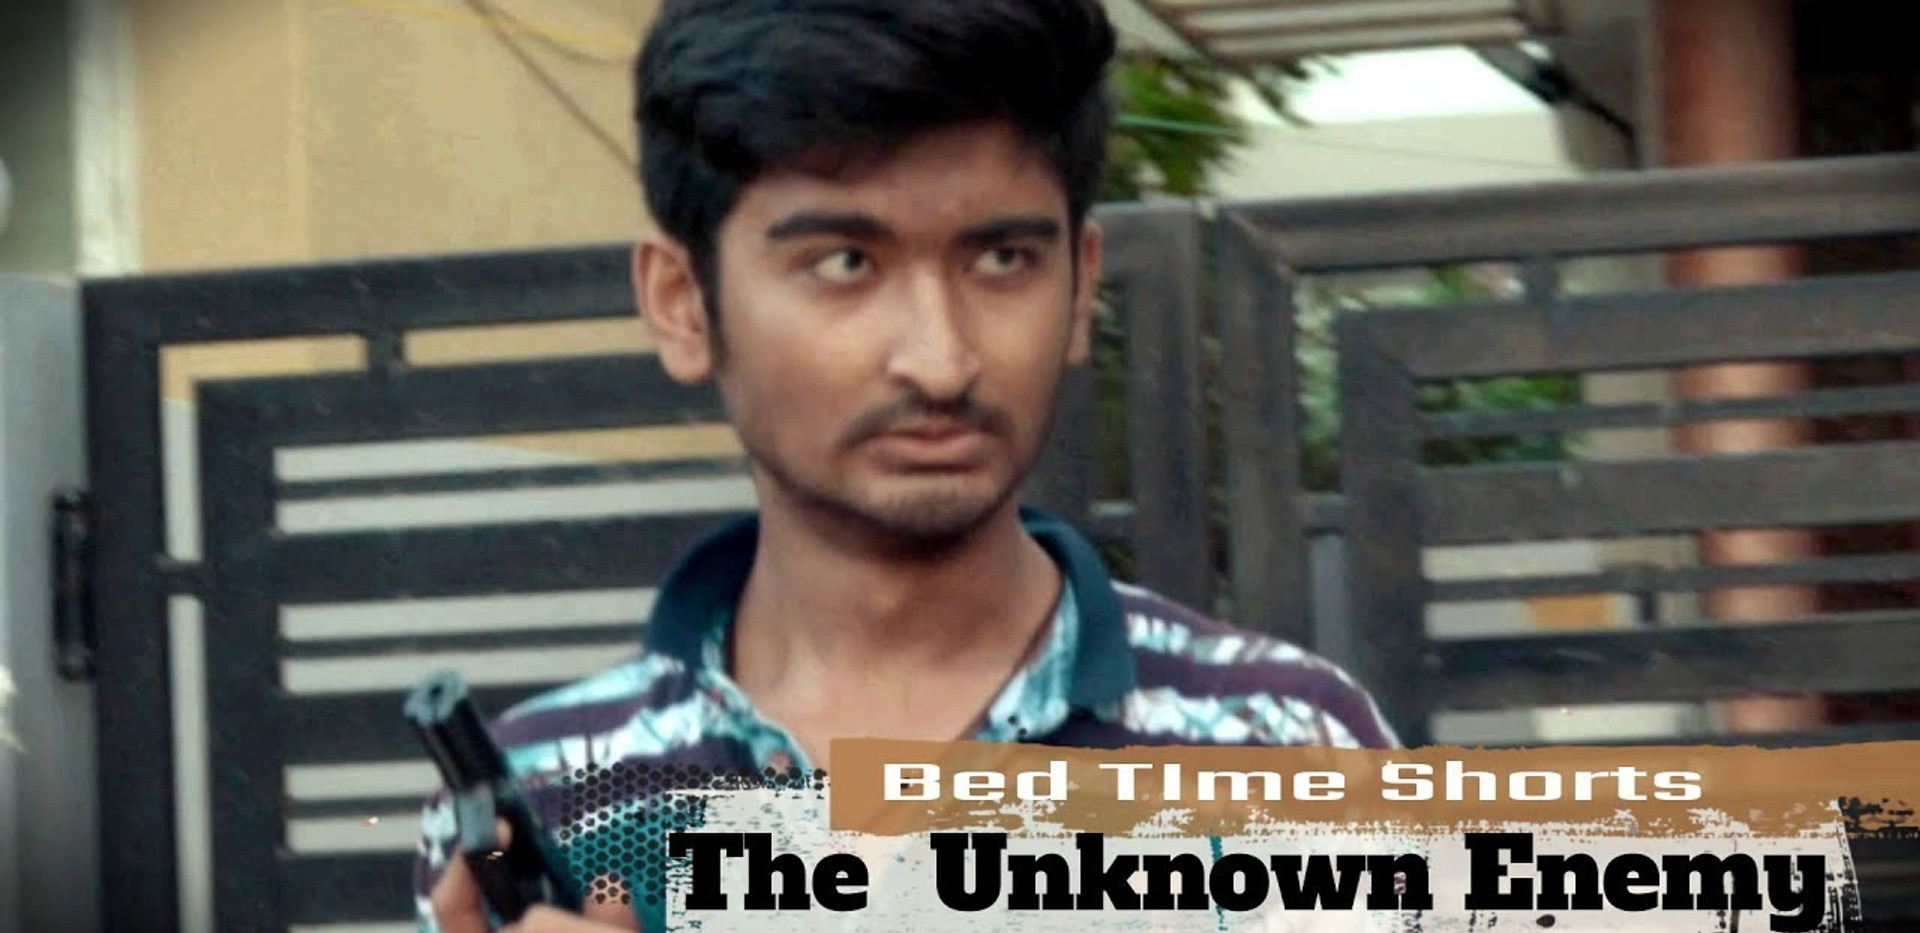 The Unknown Enemy - Bed Time Shorts